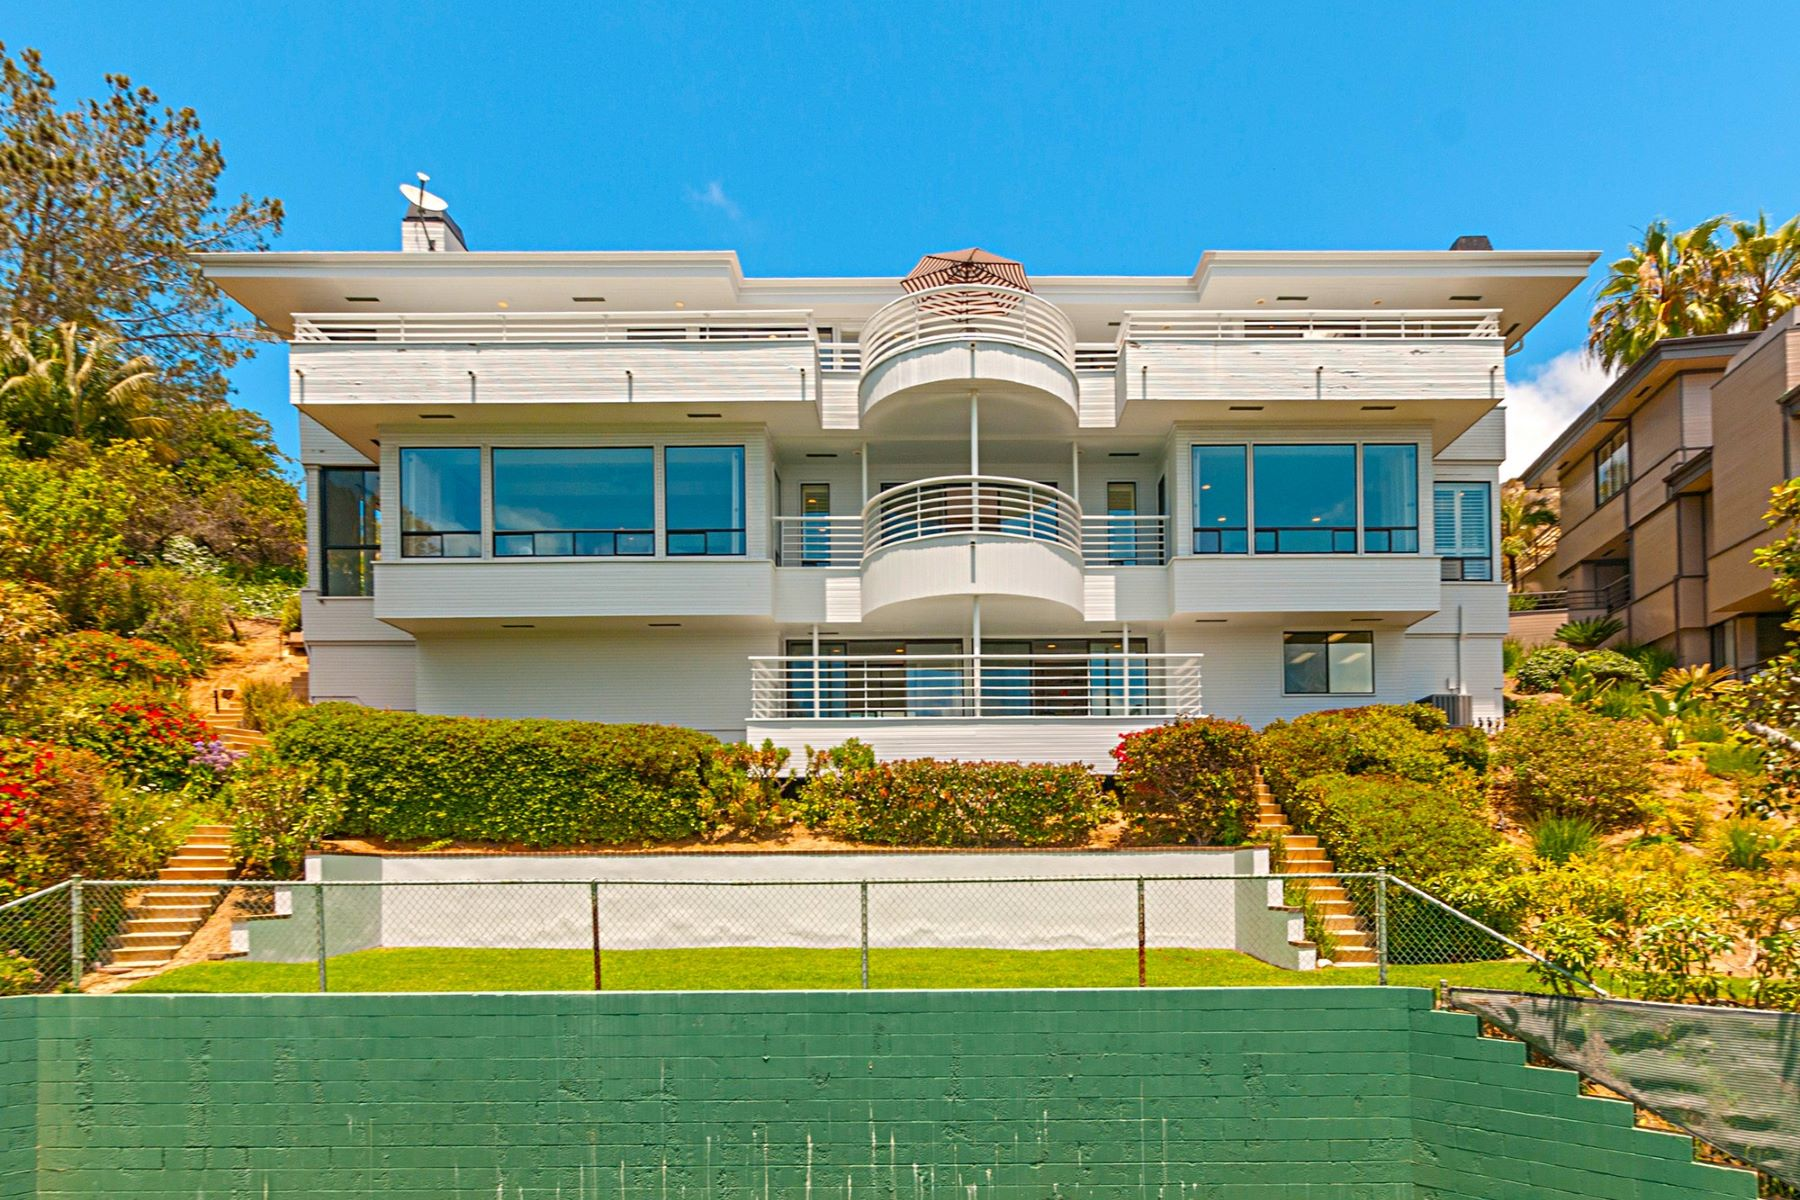 Single Family Home for Active at 430 TORREY POINT ROAD 430 TORREY POINT ROAD Del Mar, California 92014 United States